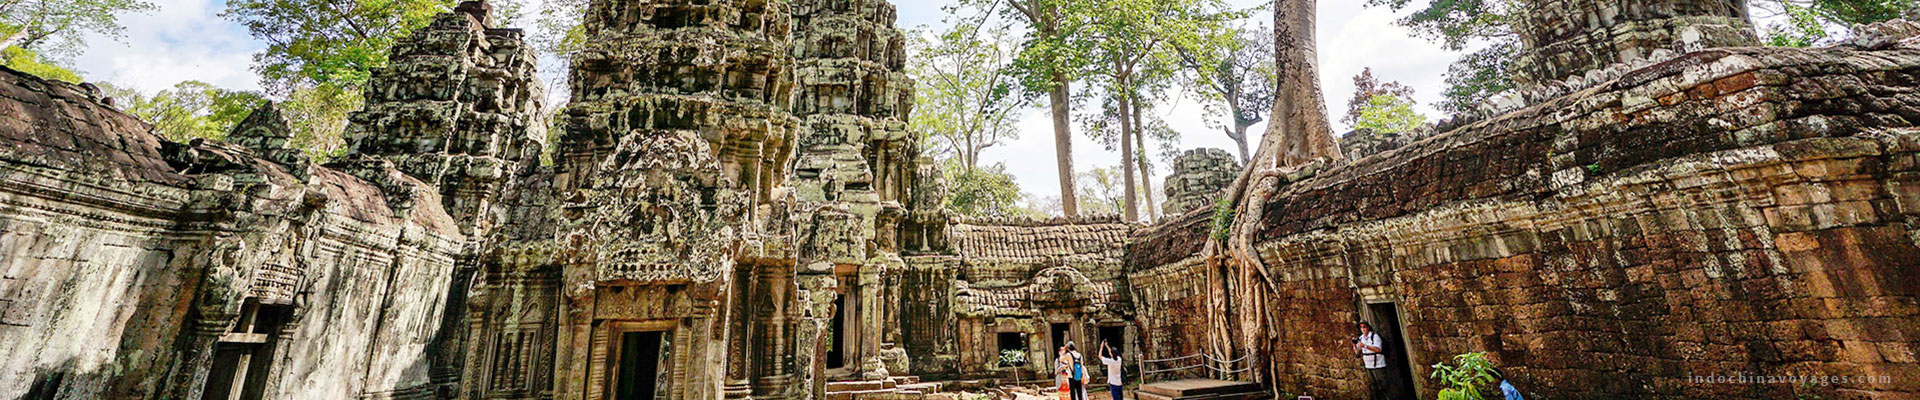 10 special things you should do in Cambodia